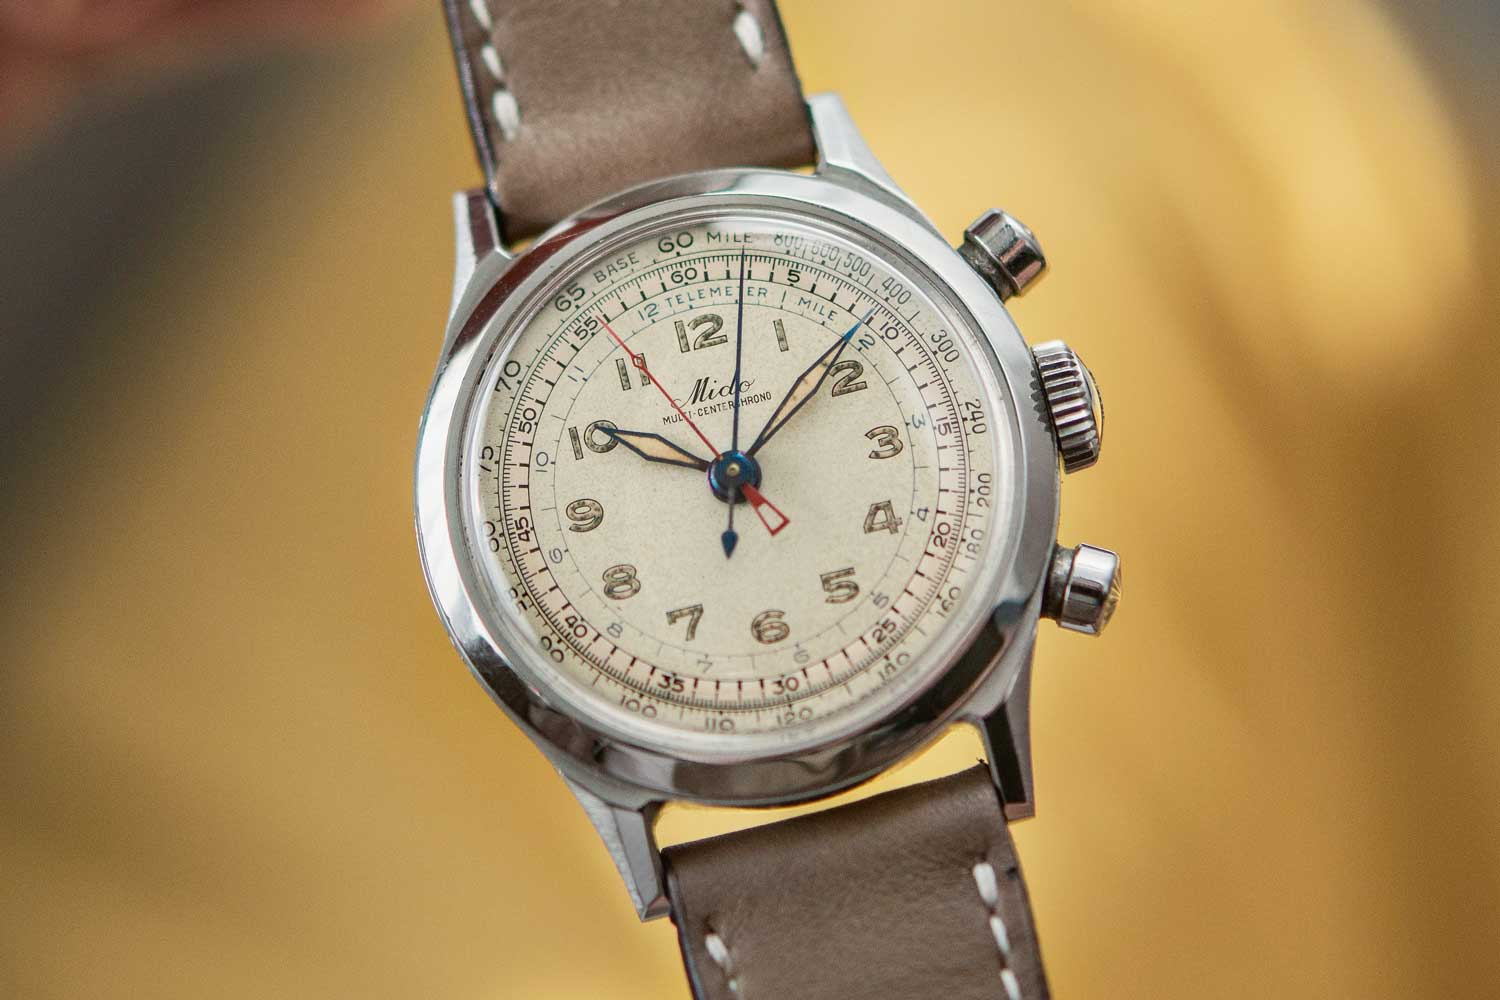 The Mido Multi-Centerchrono comes in a waterproof and anti-magnetic decagonal case made by François Borgel that was also used by Patek Philippe and Vacheron Constantin.